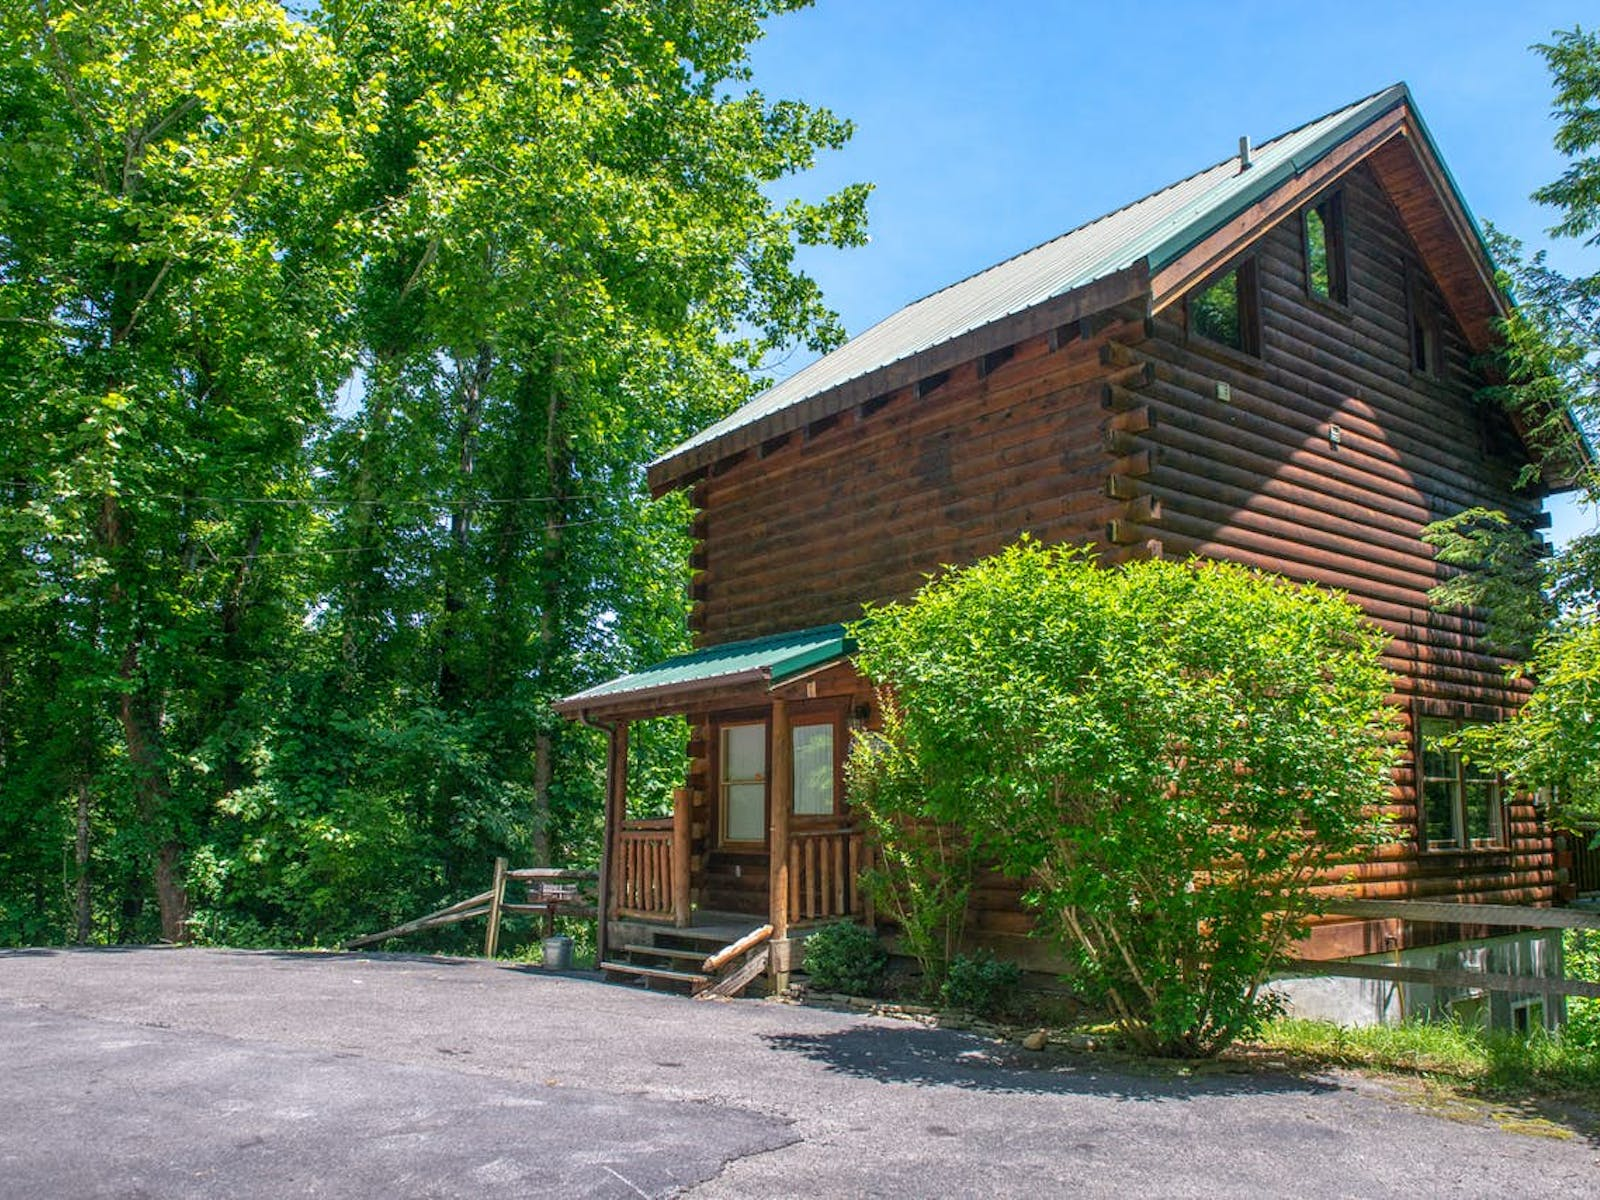 Gatlinburg, TN vacation log cabin rental surrounded by green trees